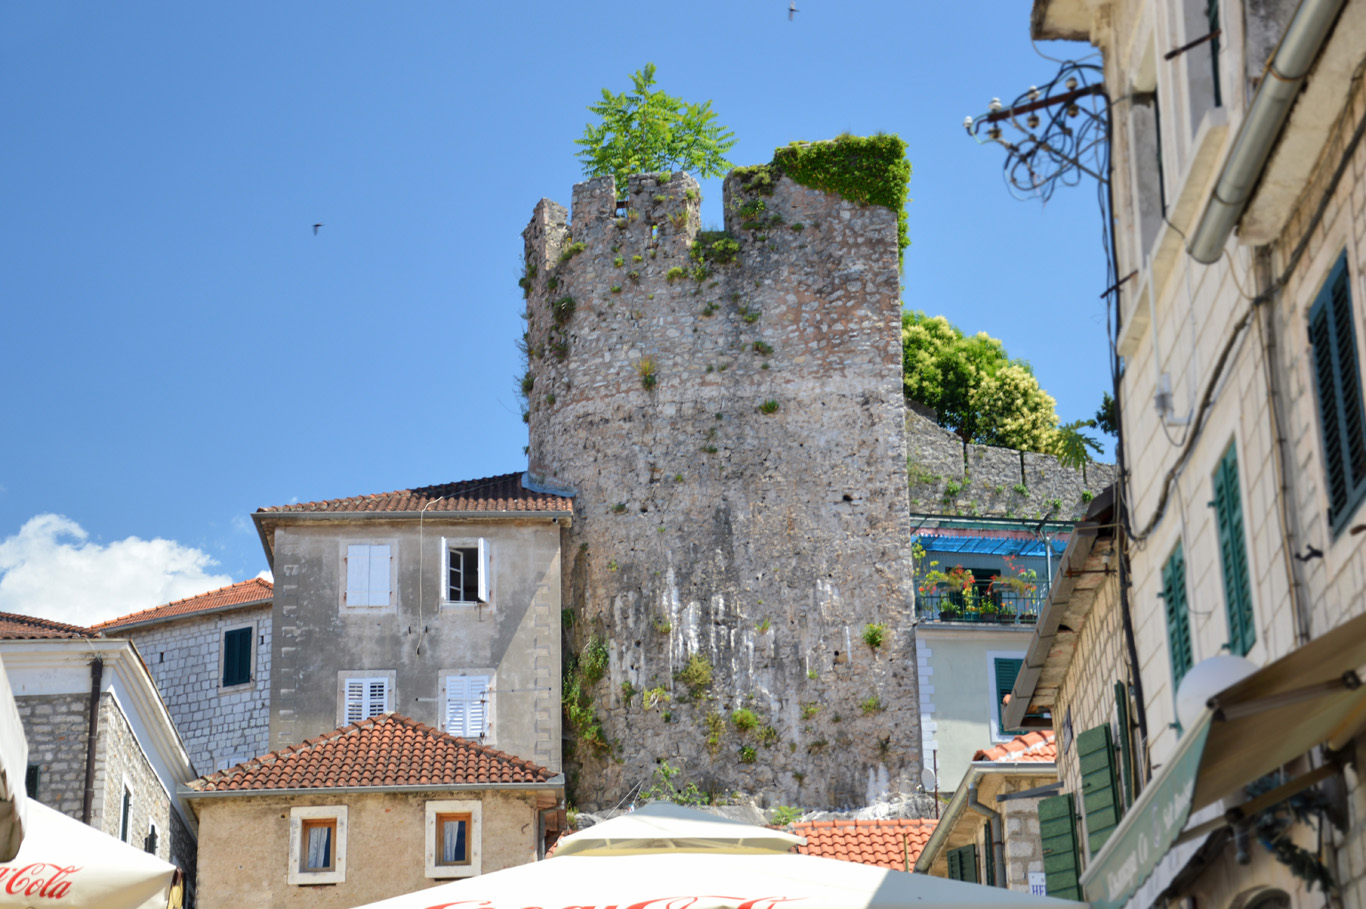 The part of old city walls